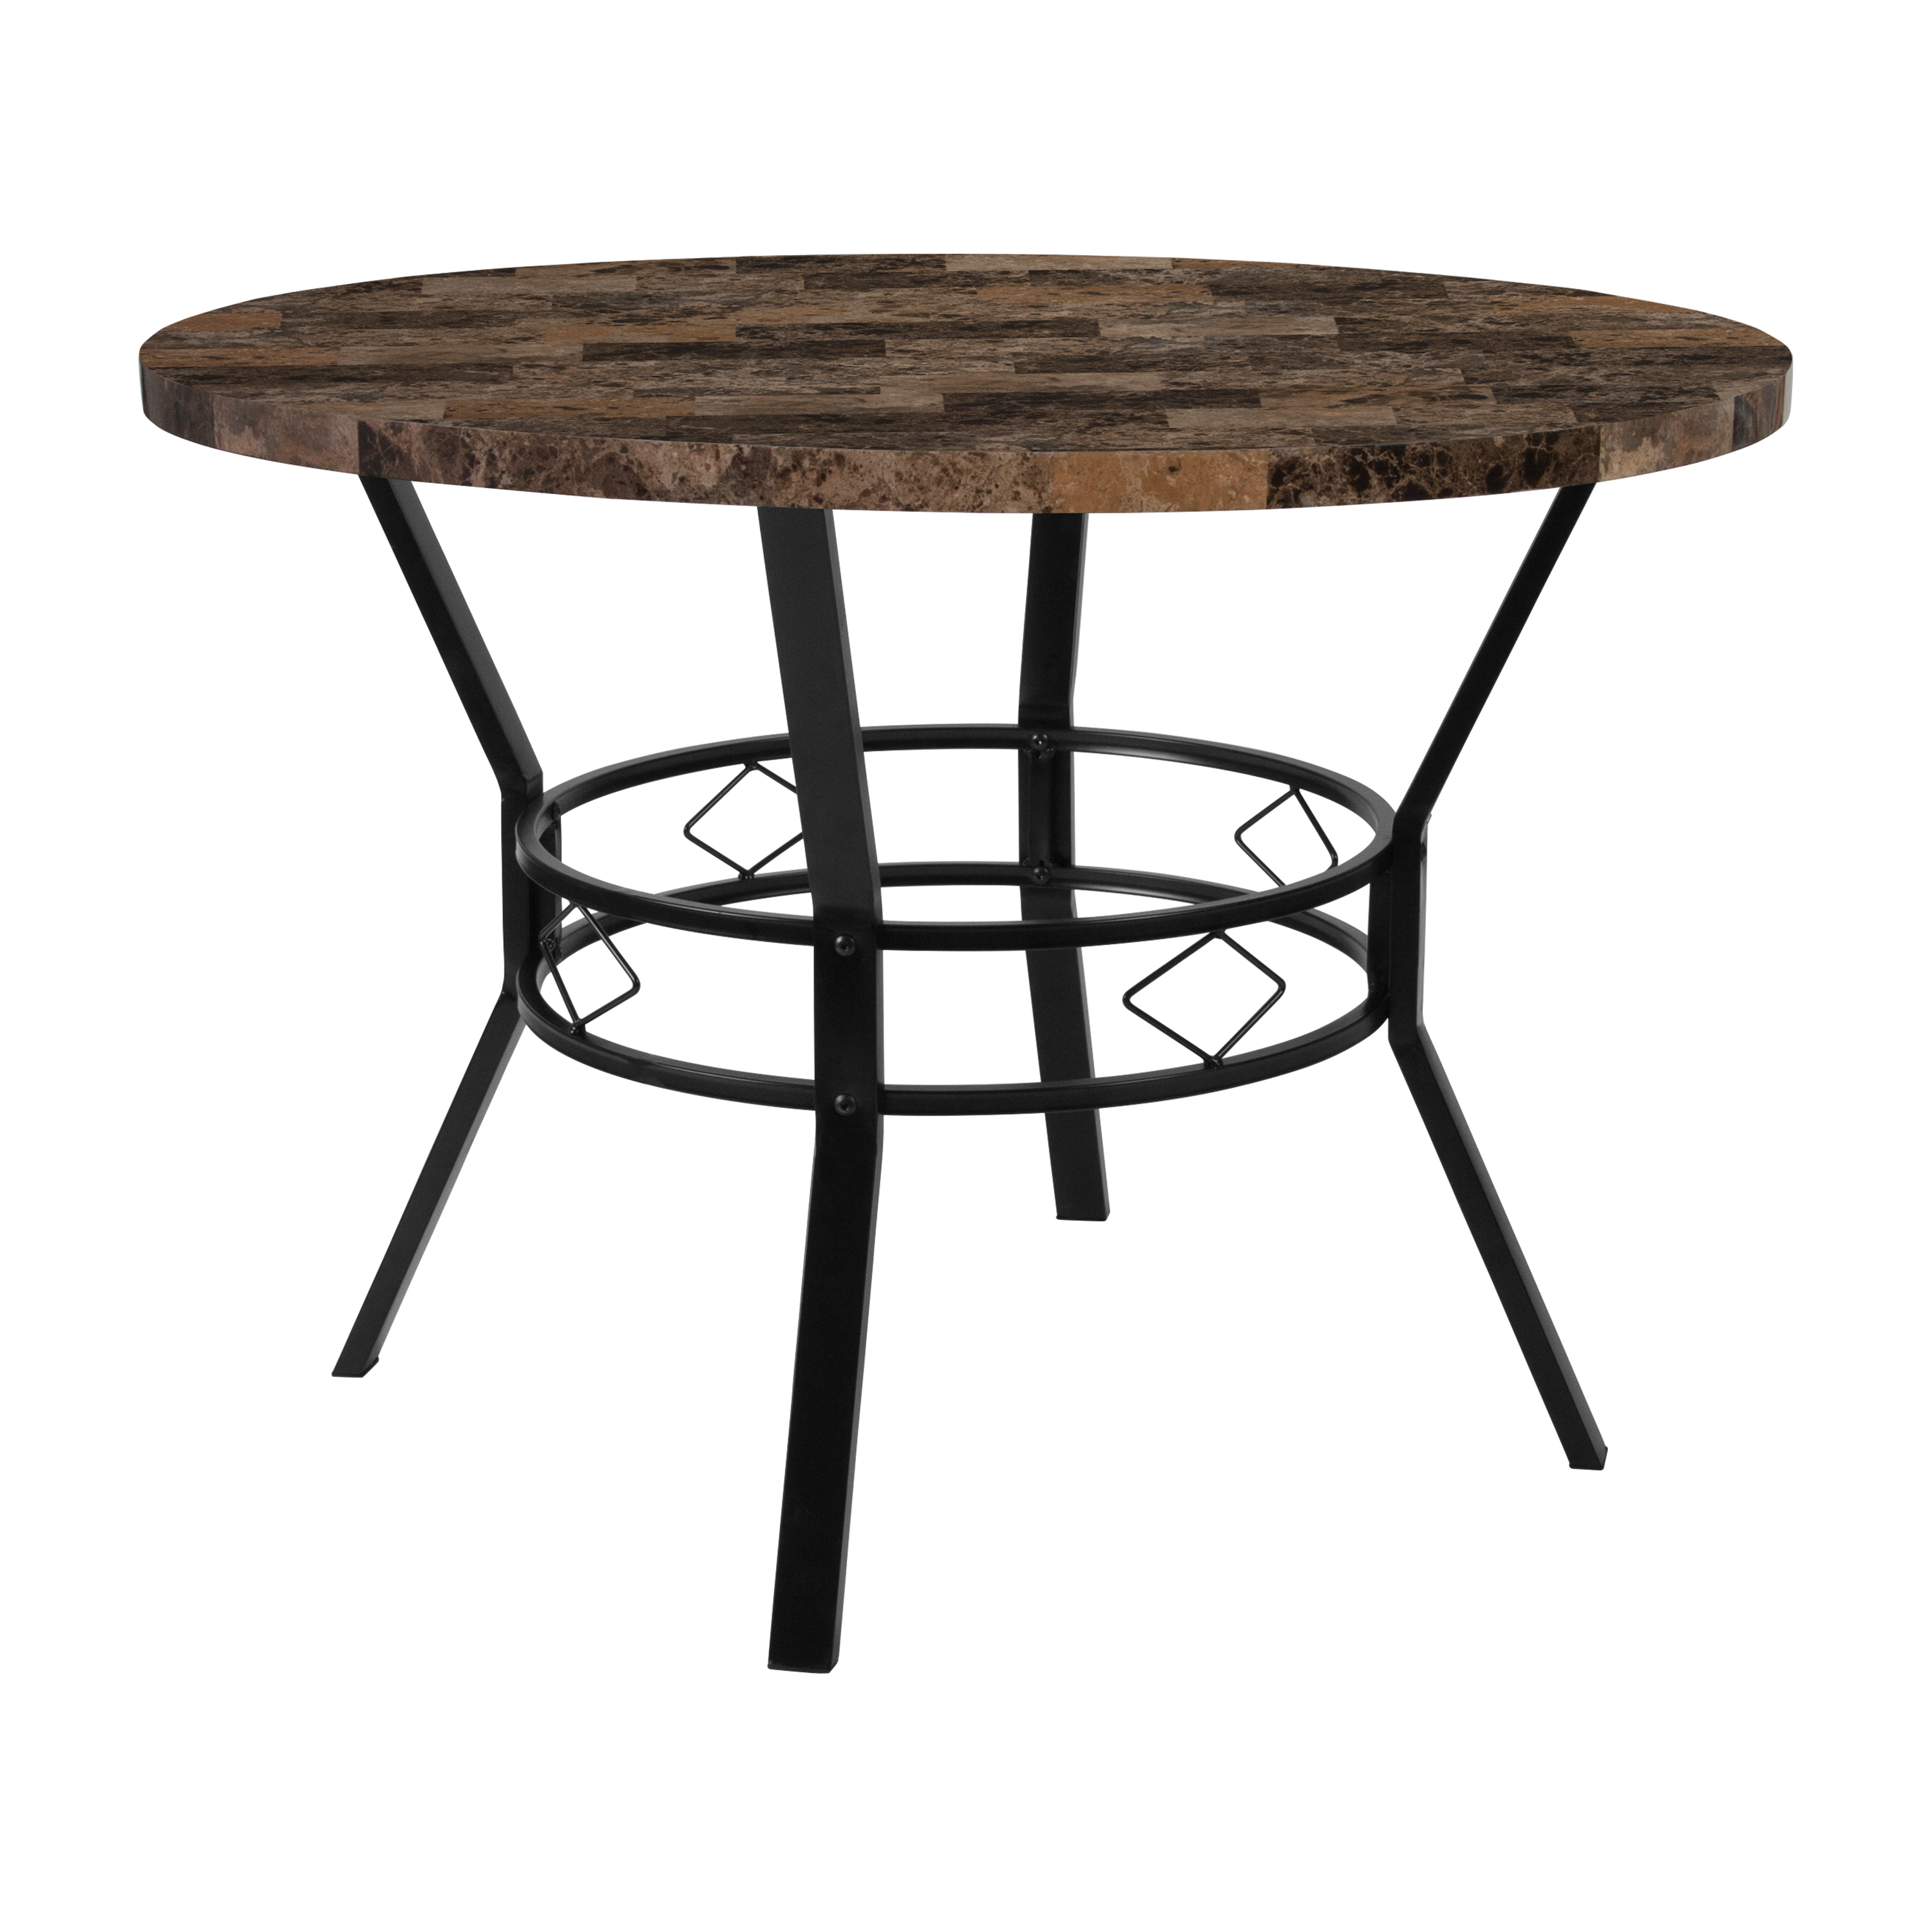 """Flash Furniture Tremont 42"""" Round Dining Table in Swirled Chocolate Marble-Like Finish by Flash Furniture"""